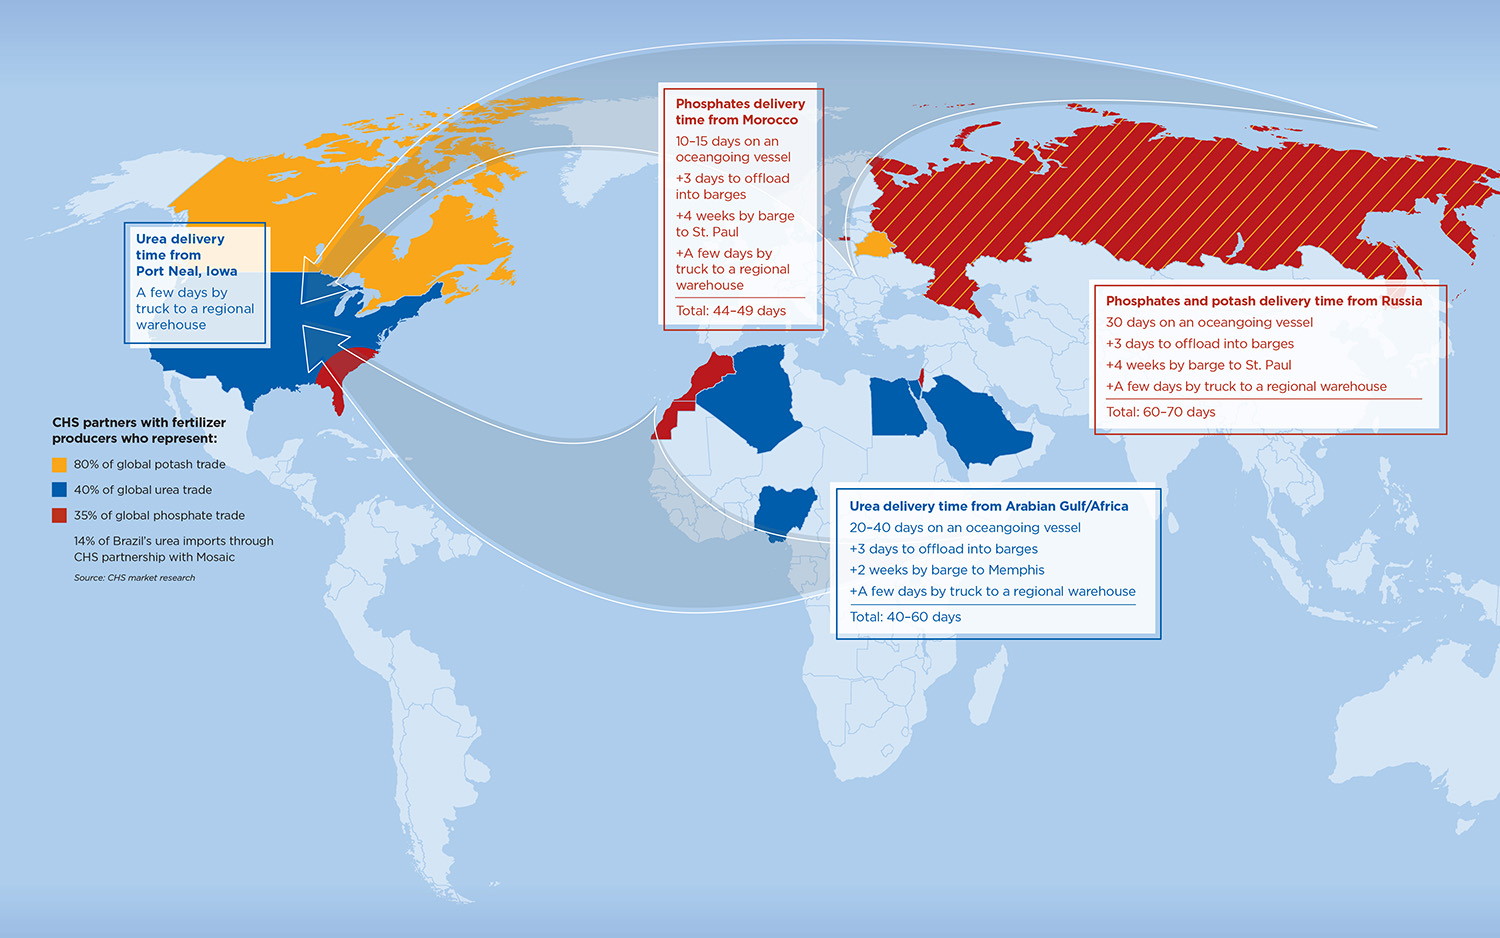 Crop nutrient supply chain world map